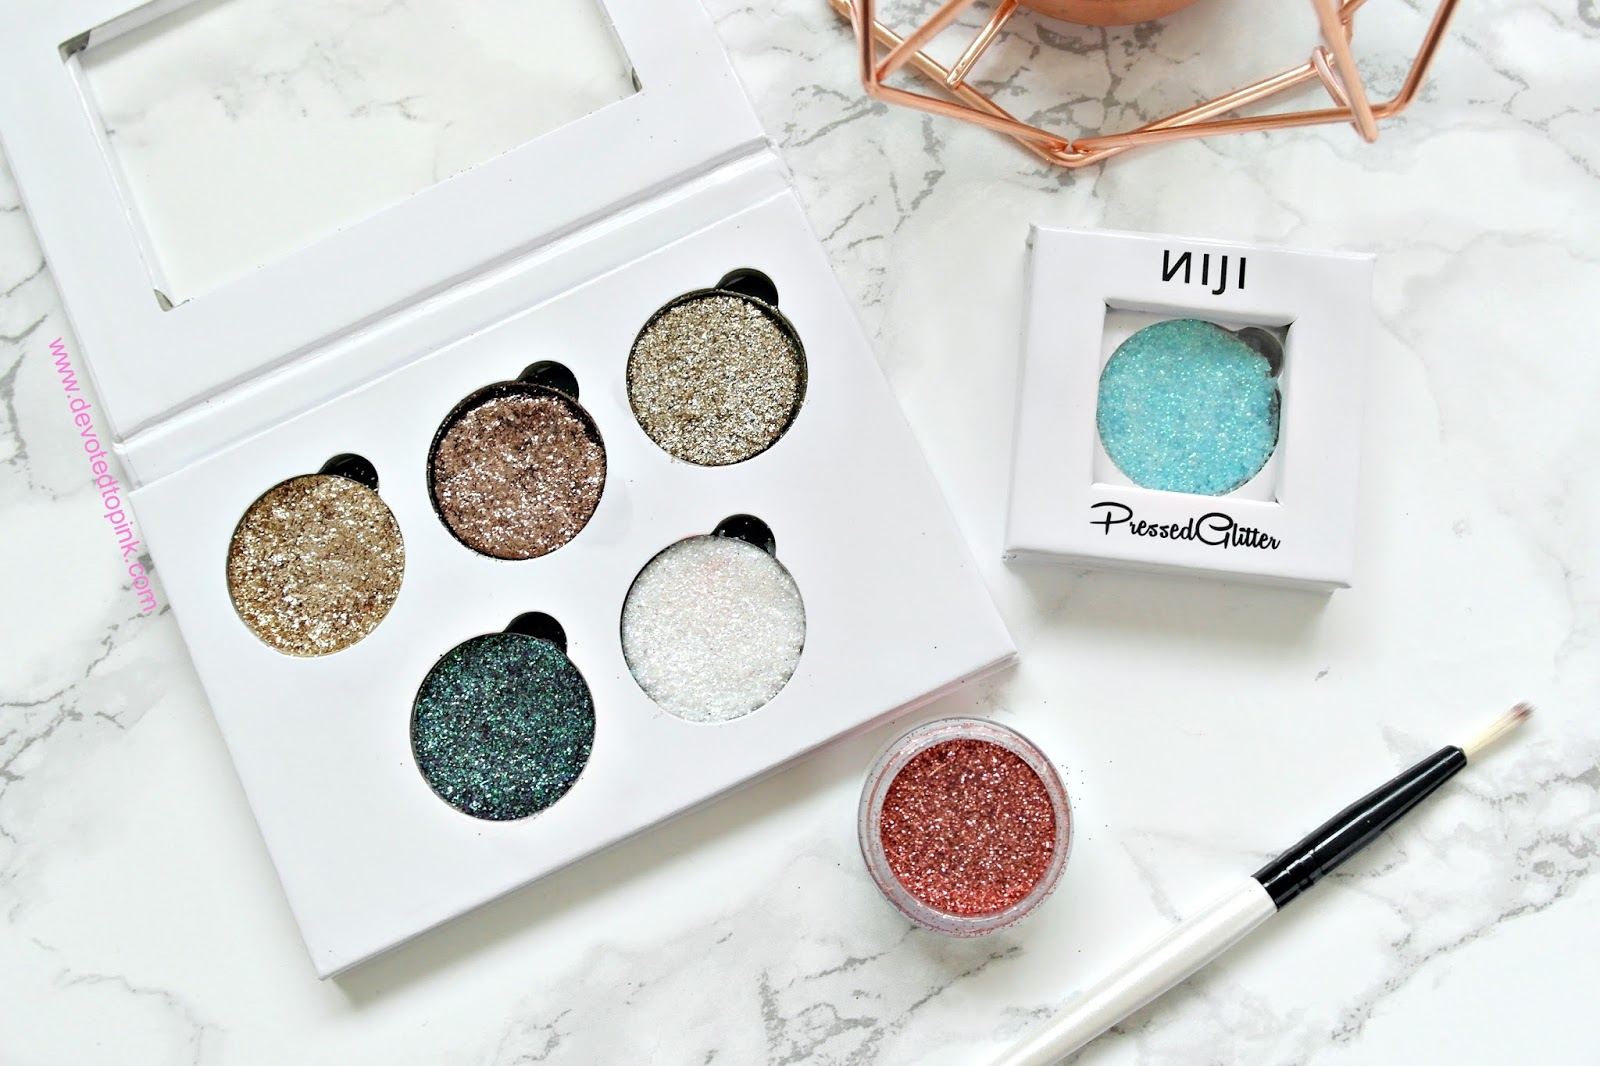 glittereyes, niji cosmetics, glitter, review, glitter lovers, glitter eyeshadow